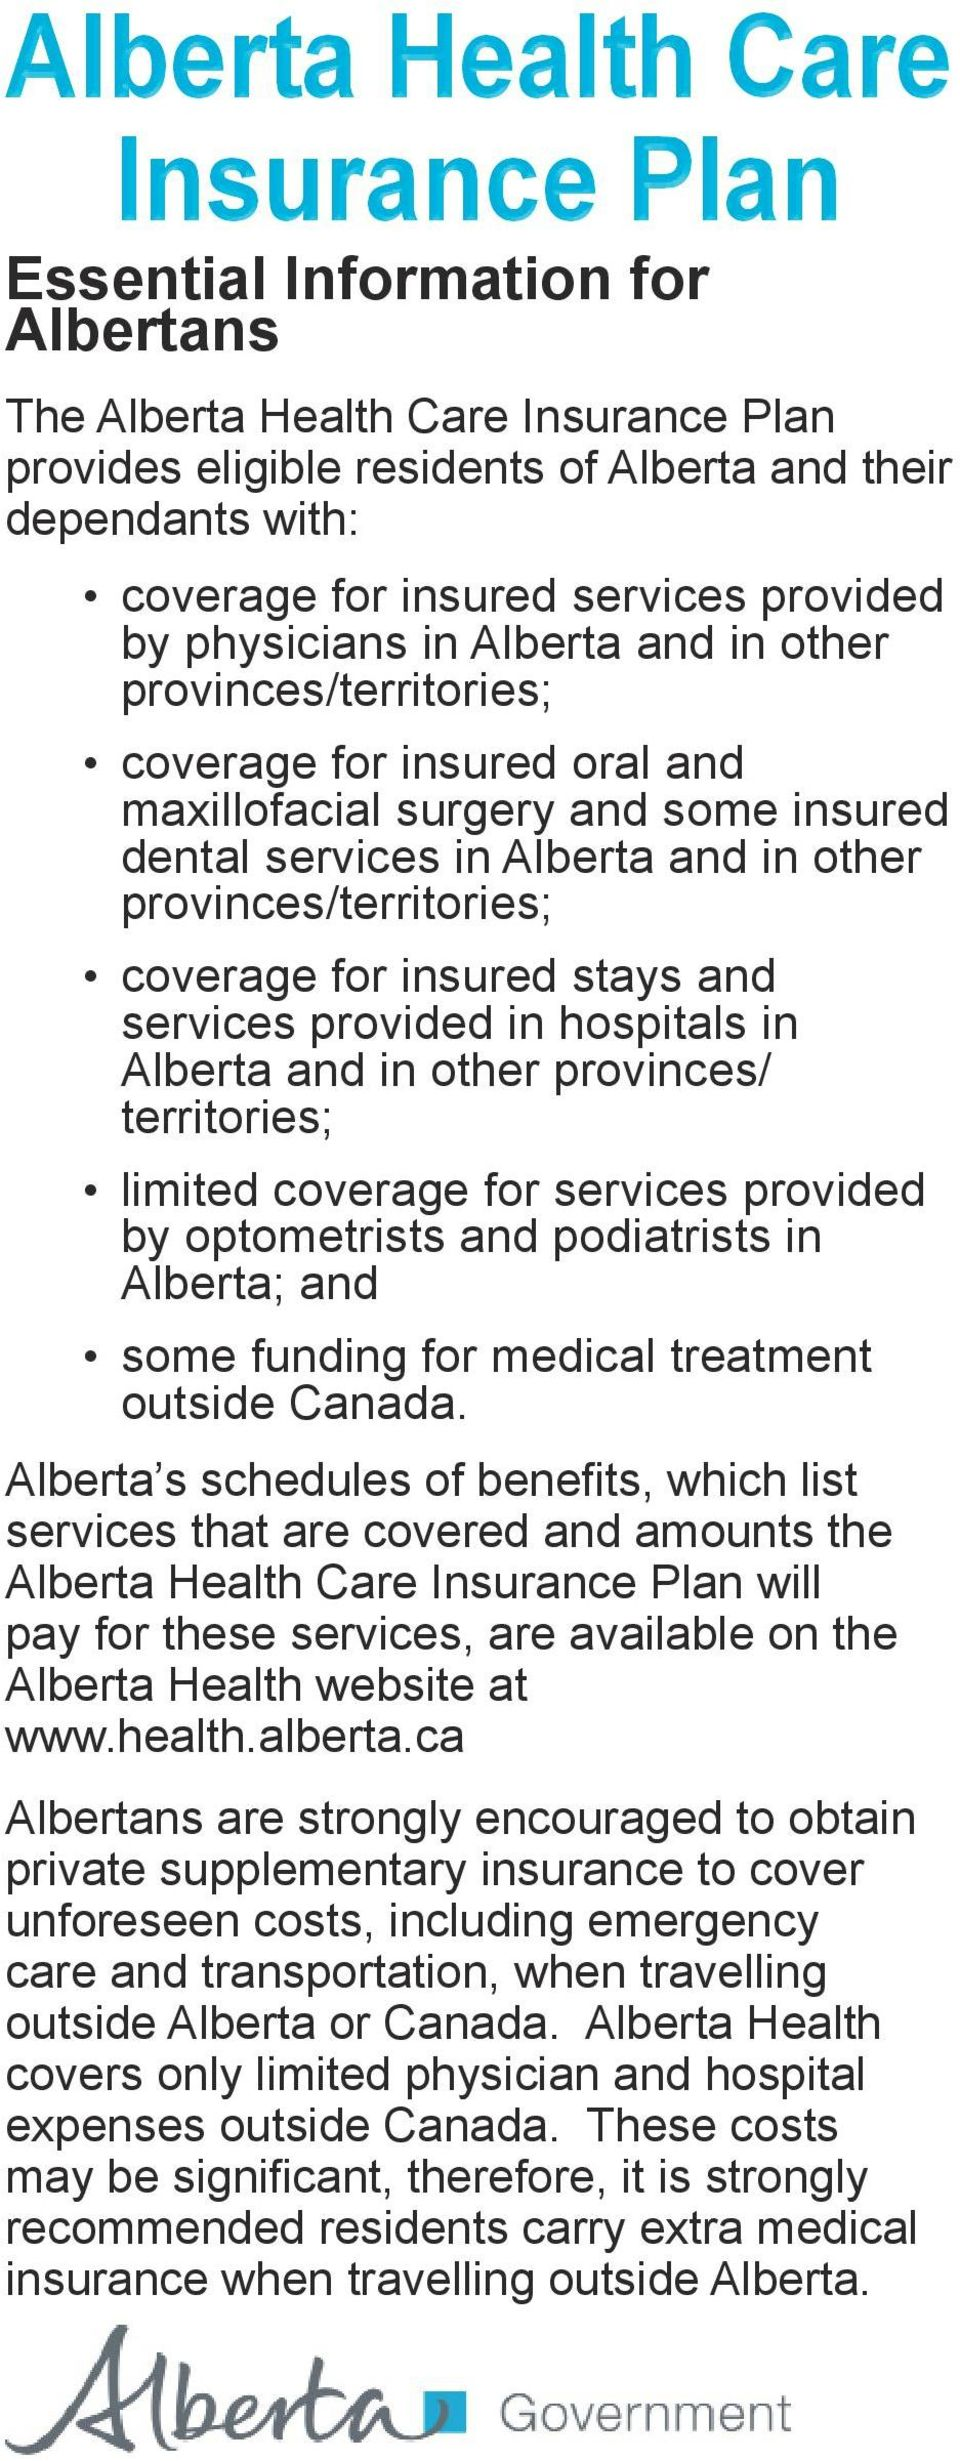 services provided in hospitals in Alberta and in other provinces/ territories; limited coverage for services provided by optometrists and podiatrists in Alberta; and some funding for medical